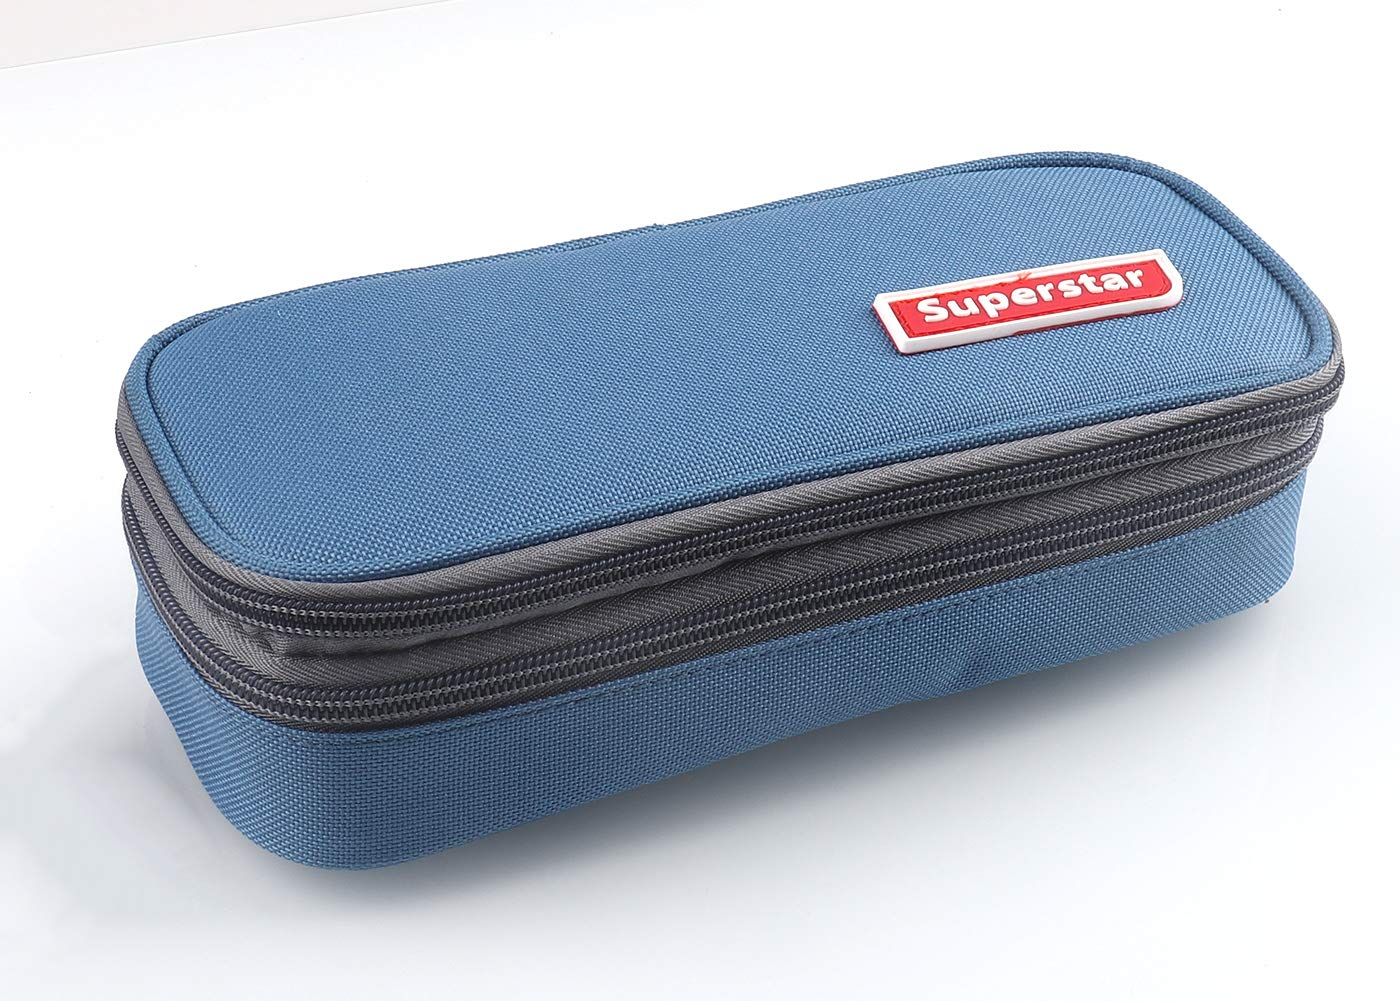 HILUCKI Pencil Case Pen Marker Bag Pouch Holder Box Large Capacity Stationery Organizer with Two Compartments for School Office Student Adults